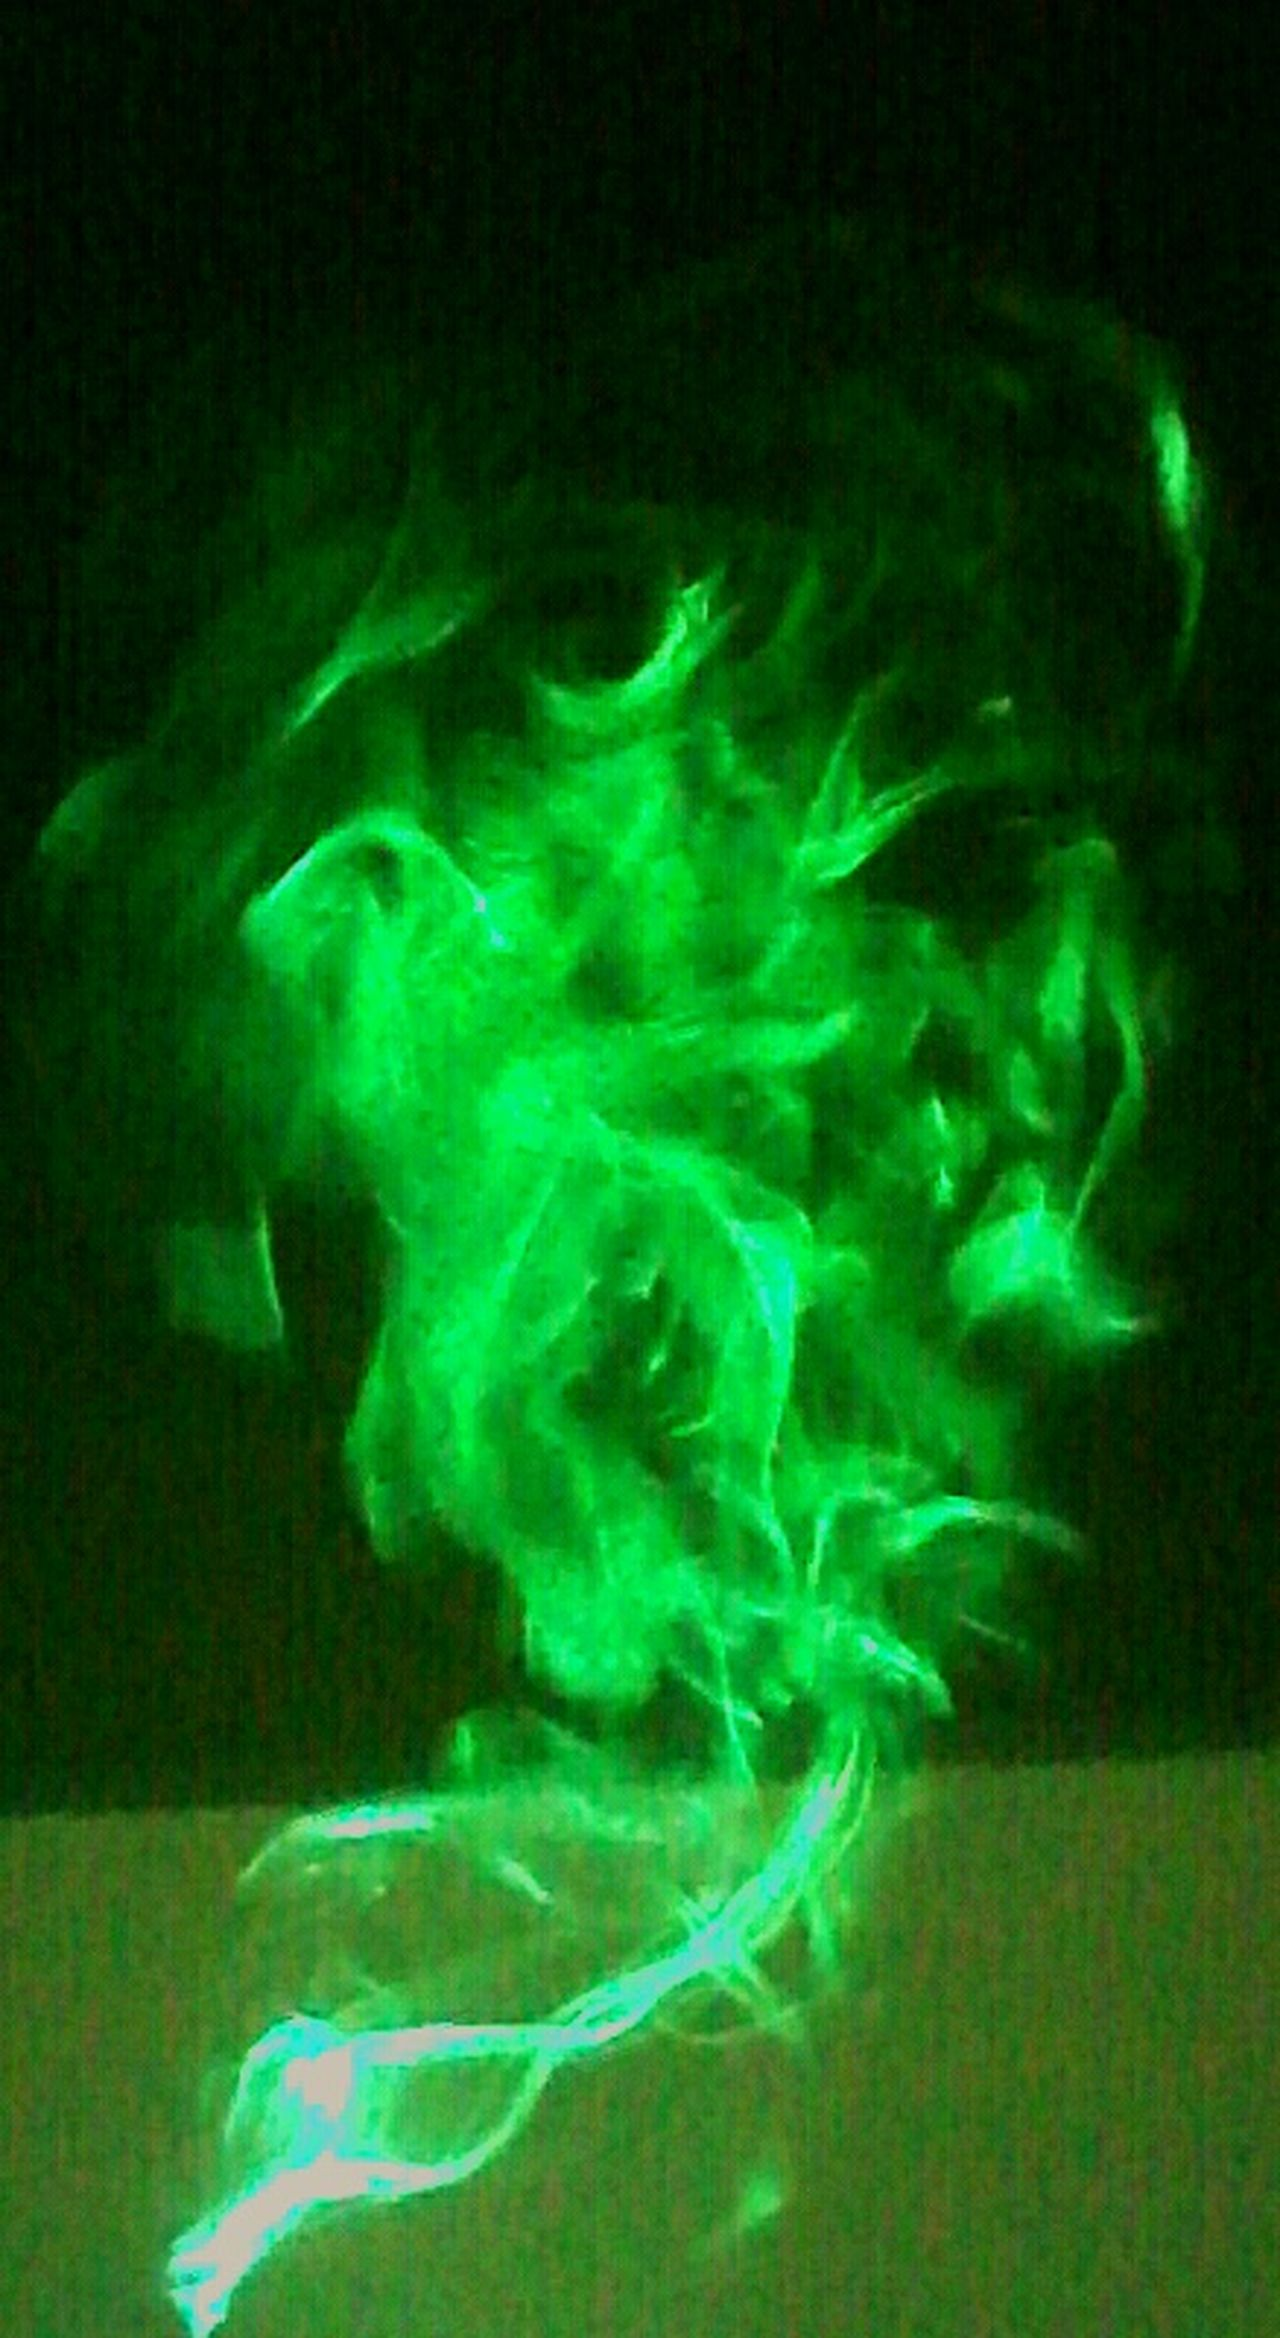 Smoke Smoker Smoketricks Smoke♥ Smoked Oddities Strange Clouds Photography Fresh On Eyeem  Blurred Motion Electric Light Glowing Smoke Tricks Demons All Around Us Illuminated Dark Exhale Multi Colored Motion Monsters